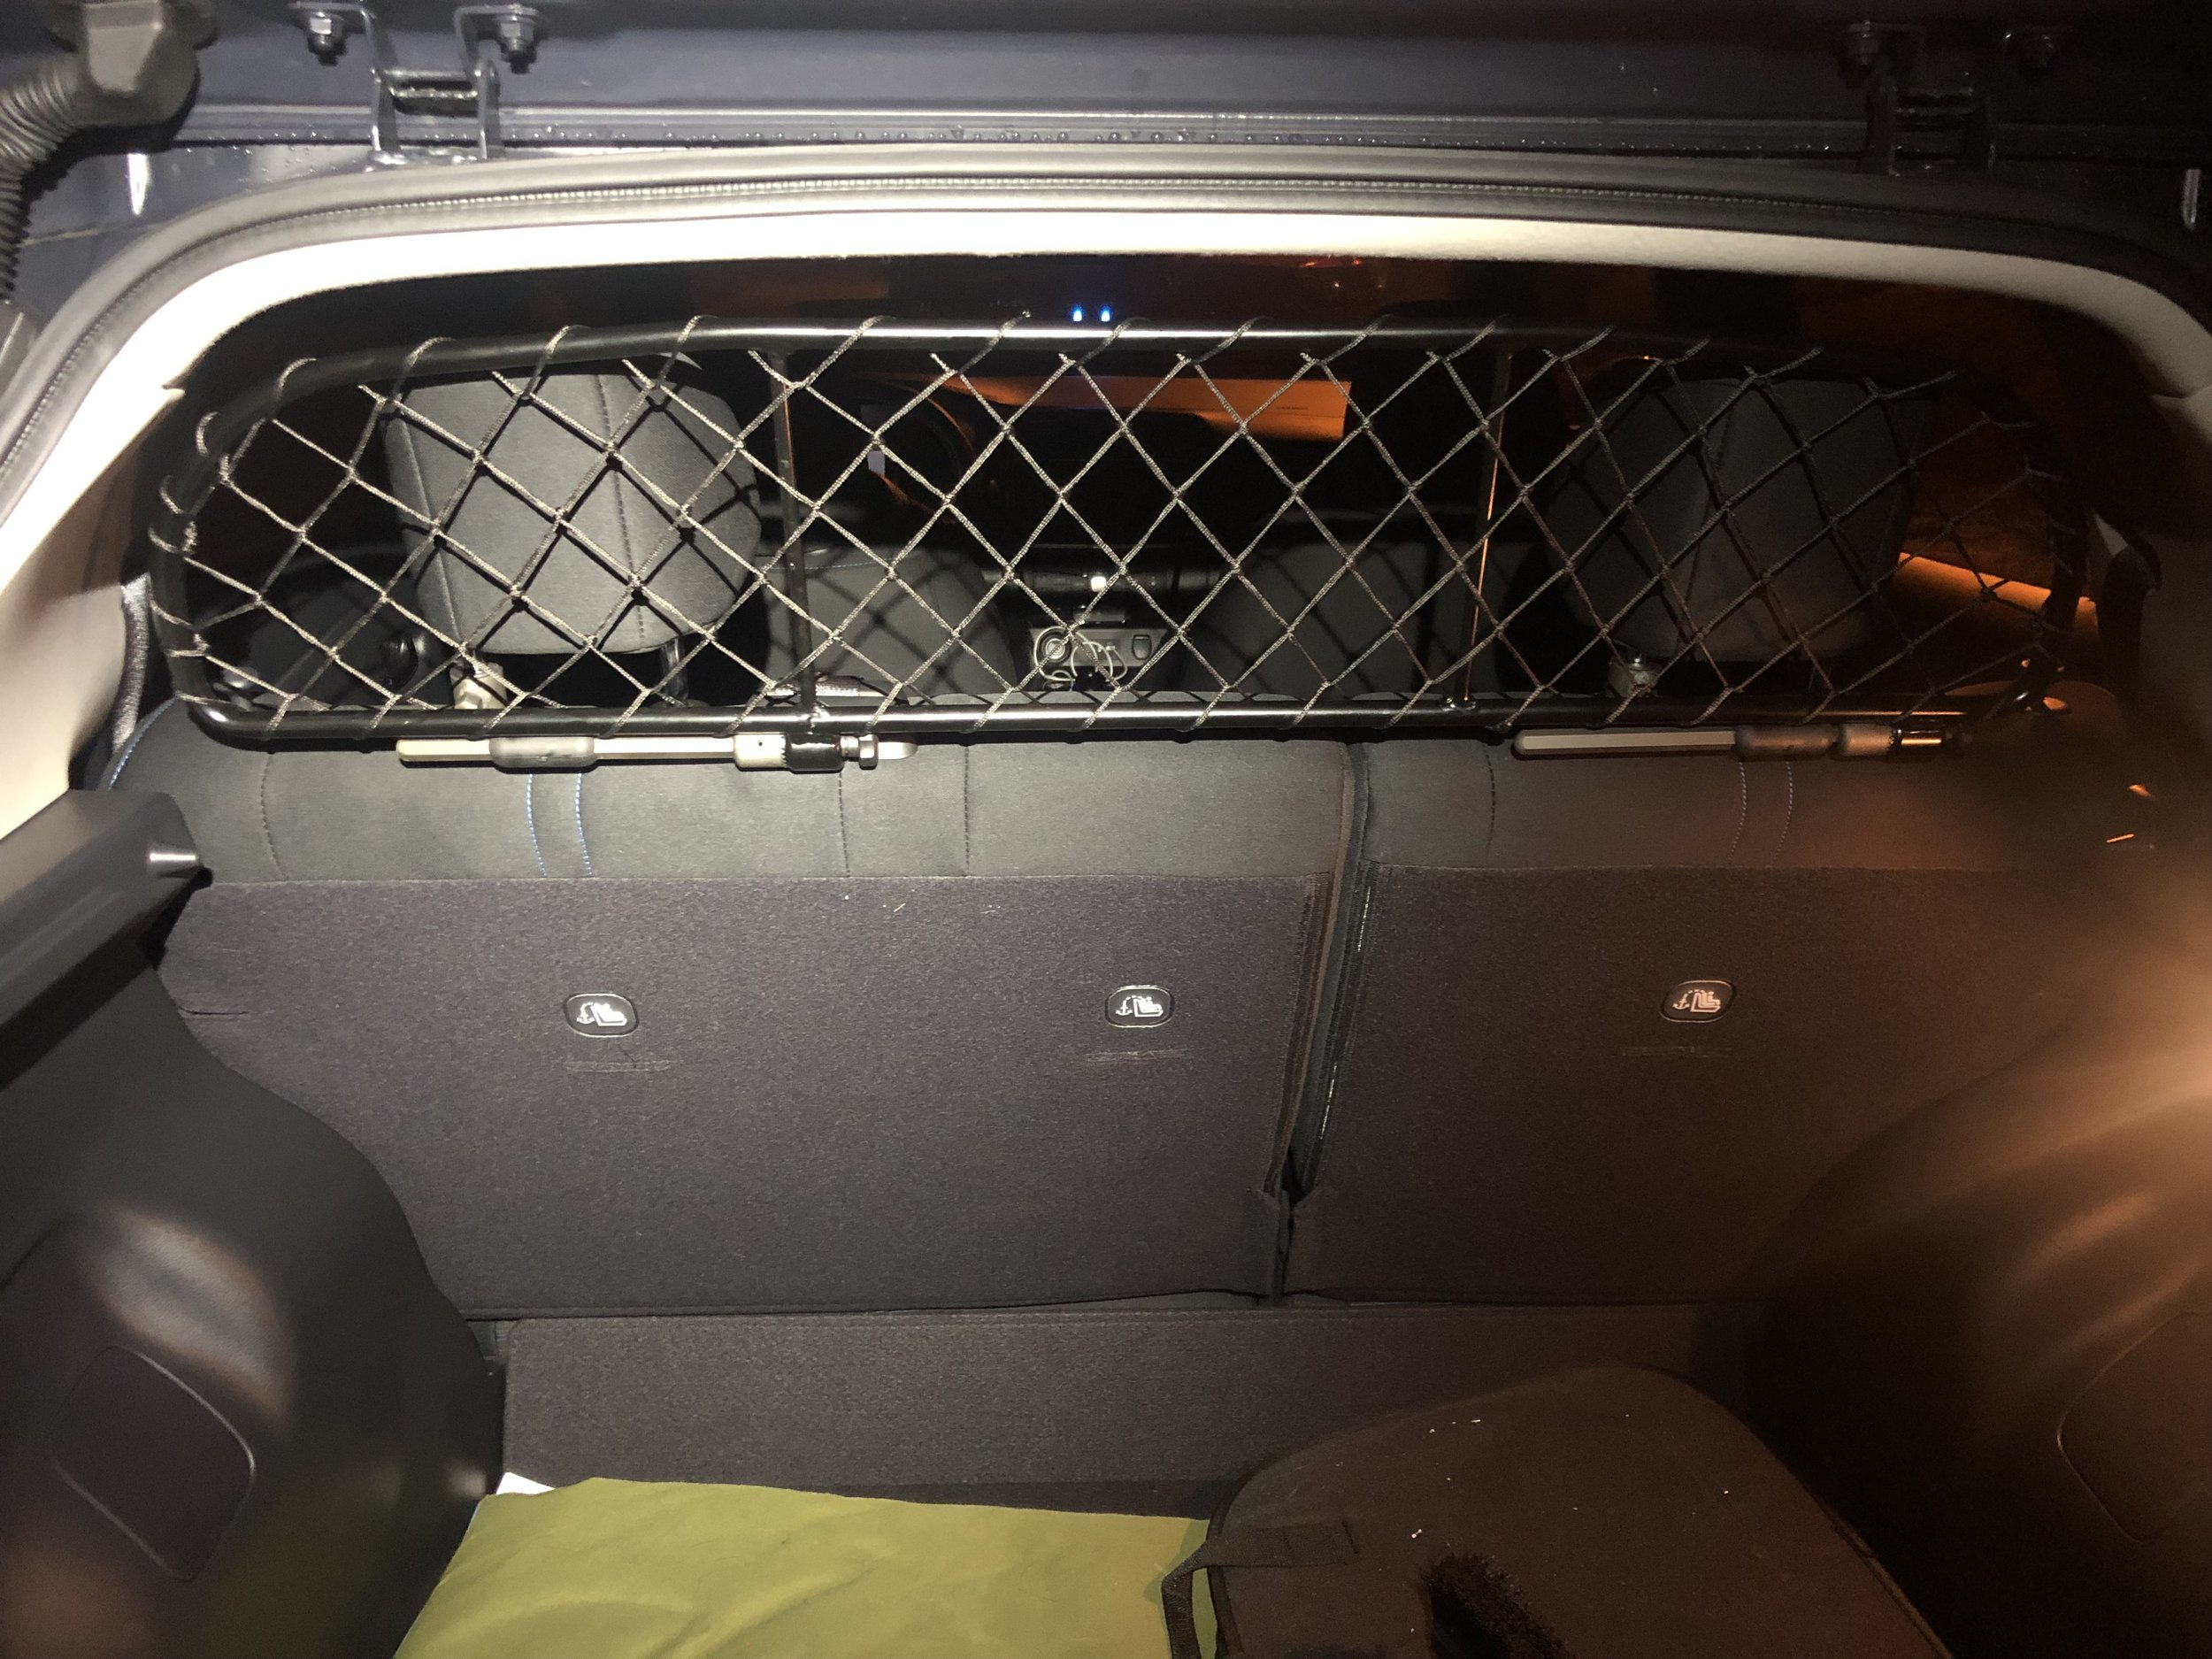 The only aftermarket product I added to my car is a pet barrier. This installs against the rear seats to ensure my Border Collie stays in the rear cargo area. She is a little Houdini, but has yet to break out.